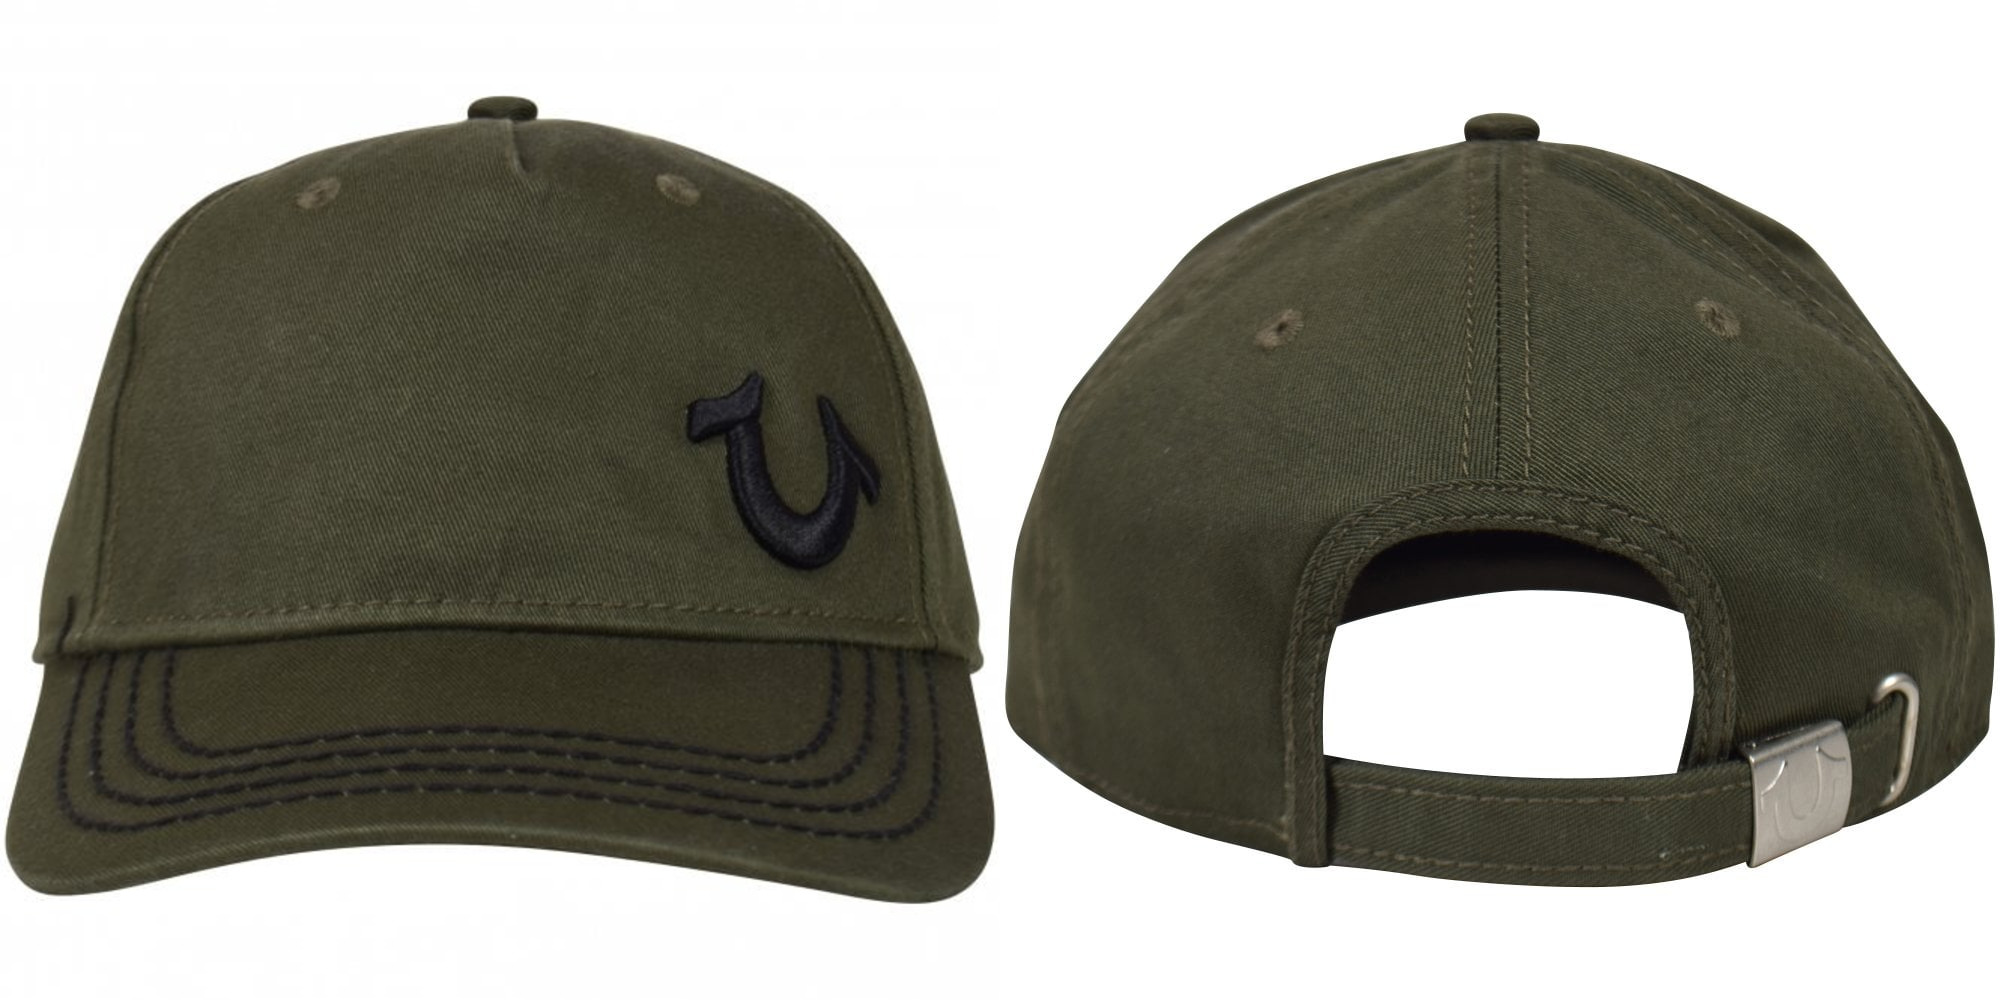 Top 7 Designer Caps For Sunnier Days | Brother To Brother | Blog